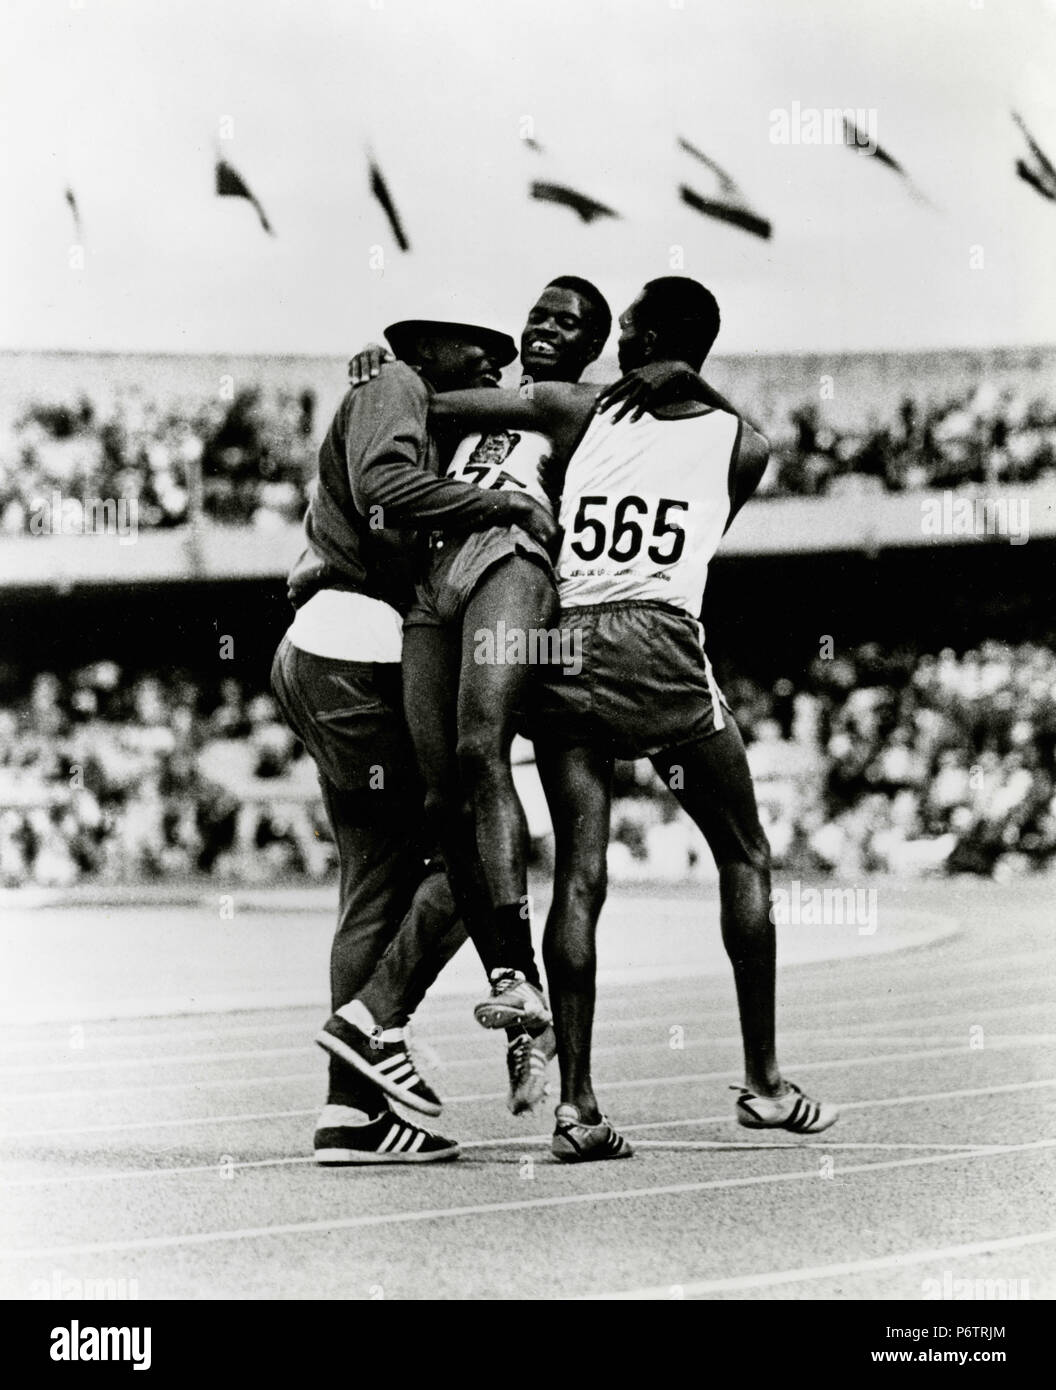 Athletes competing at the Mexico 68 Olympics game - Stock Image